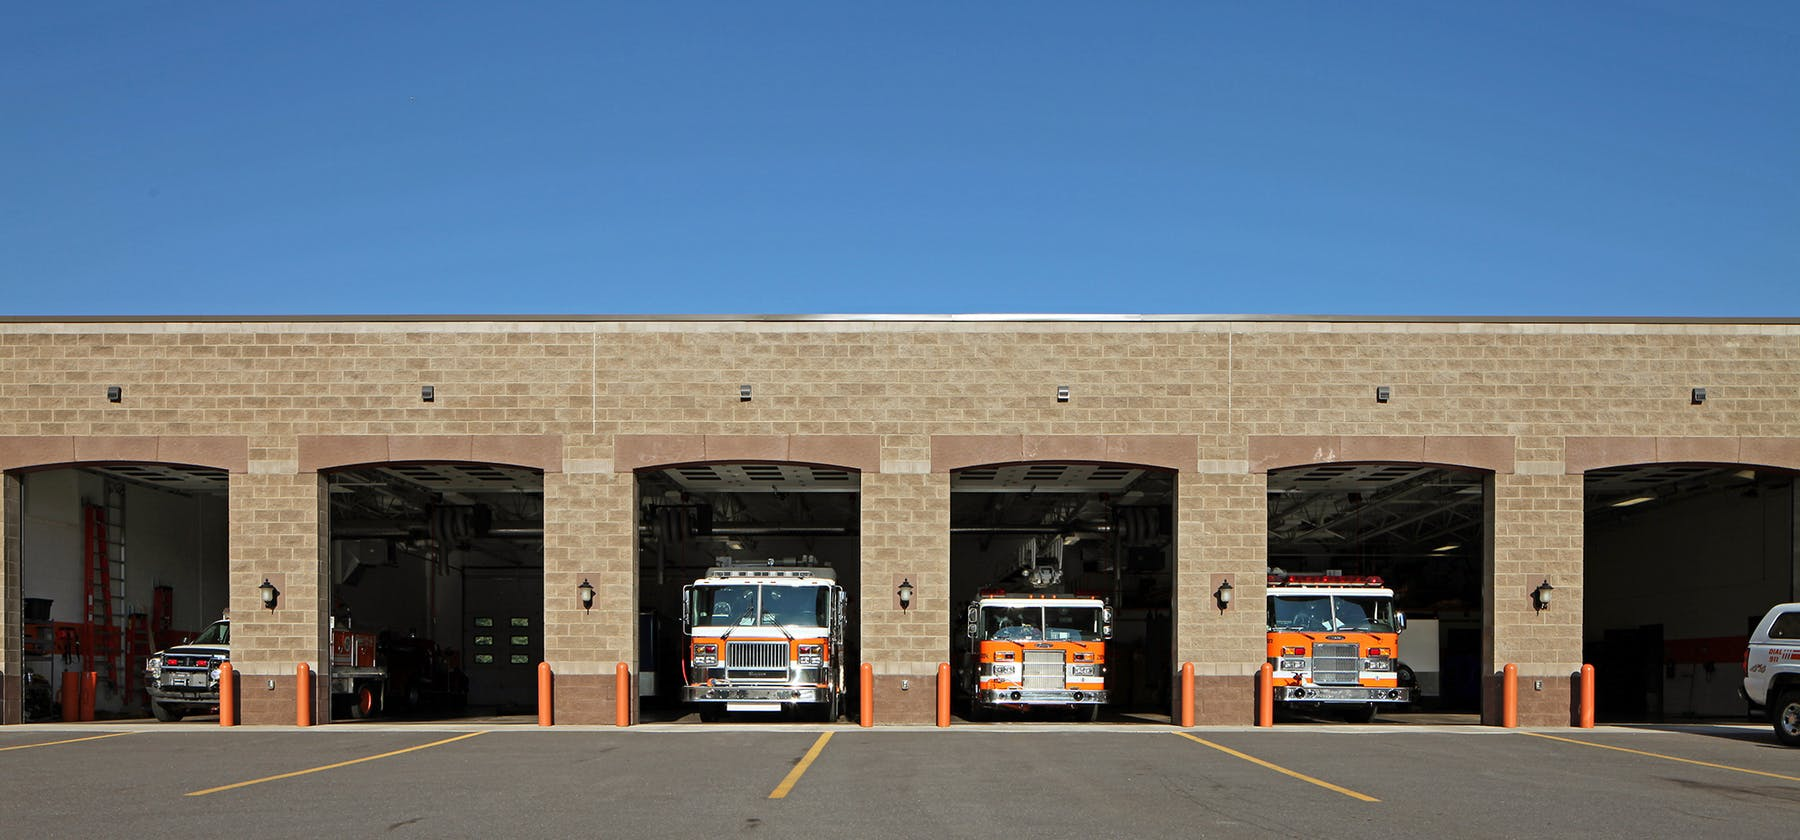 Marquette Township Fire Hall facade with trucks